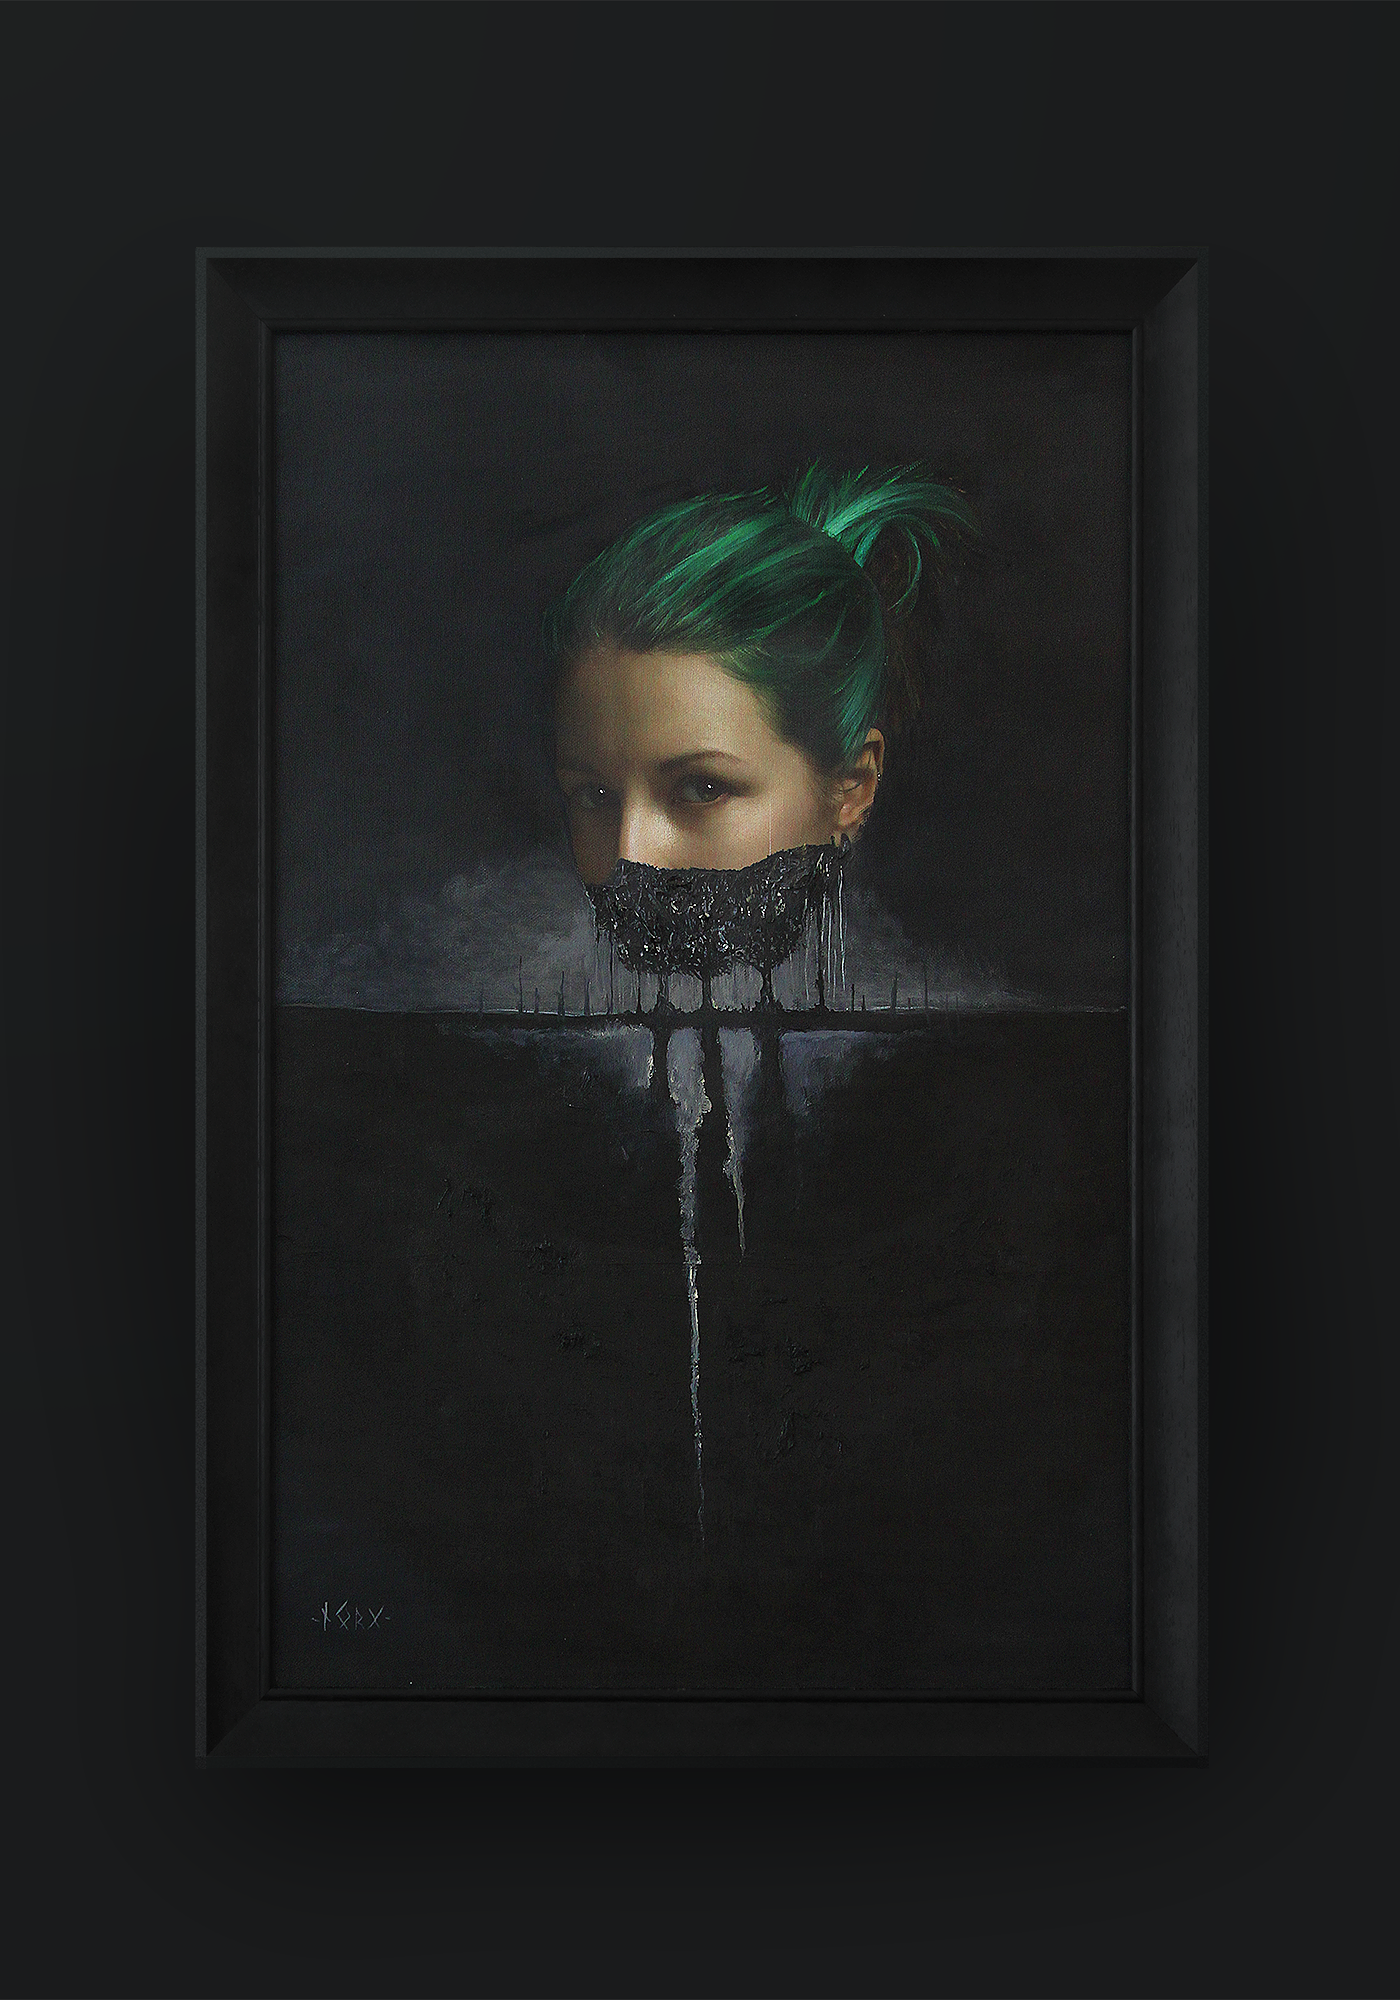 Girl with Green Hairs. Белько Алексей